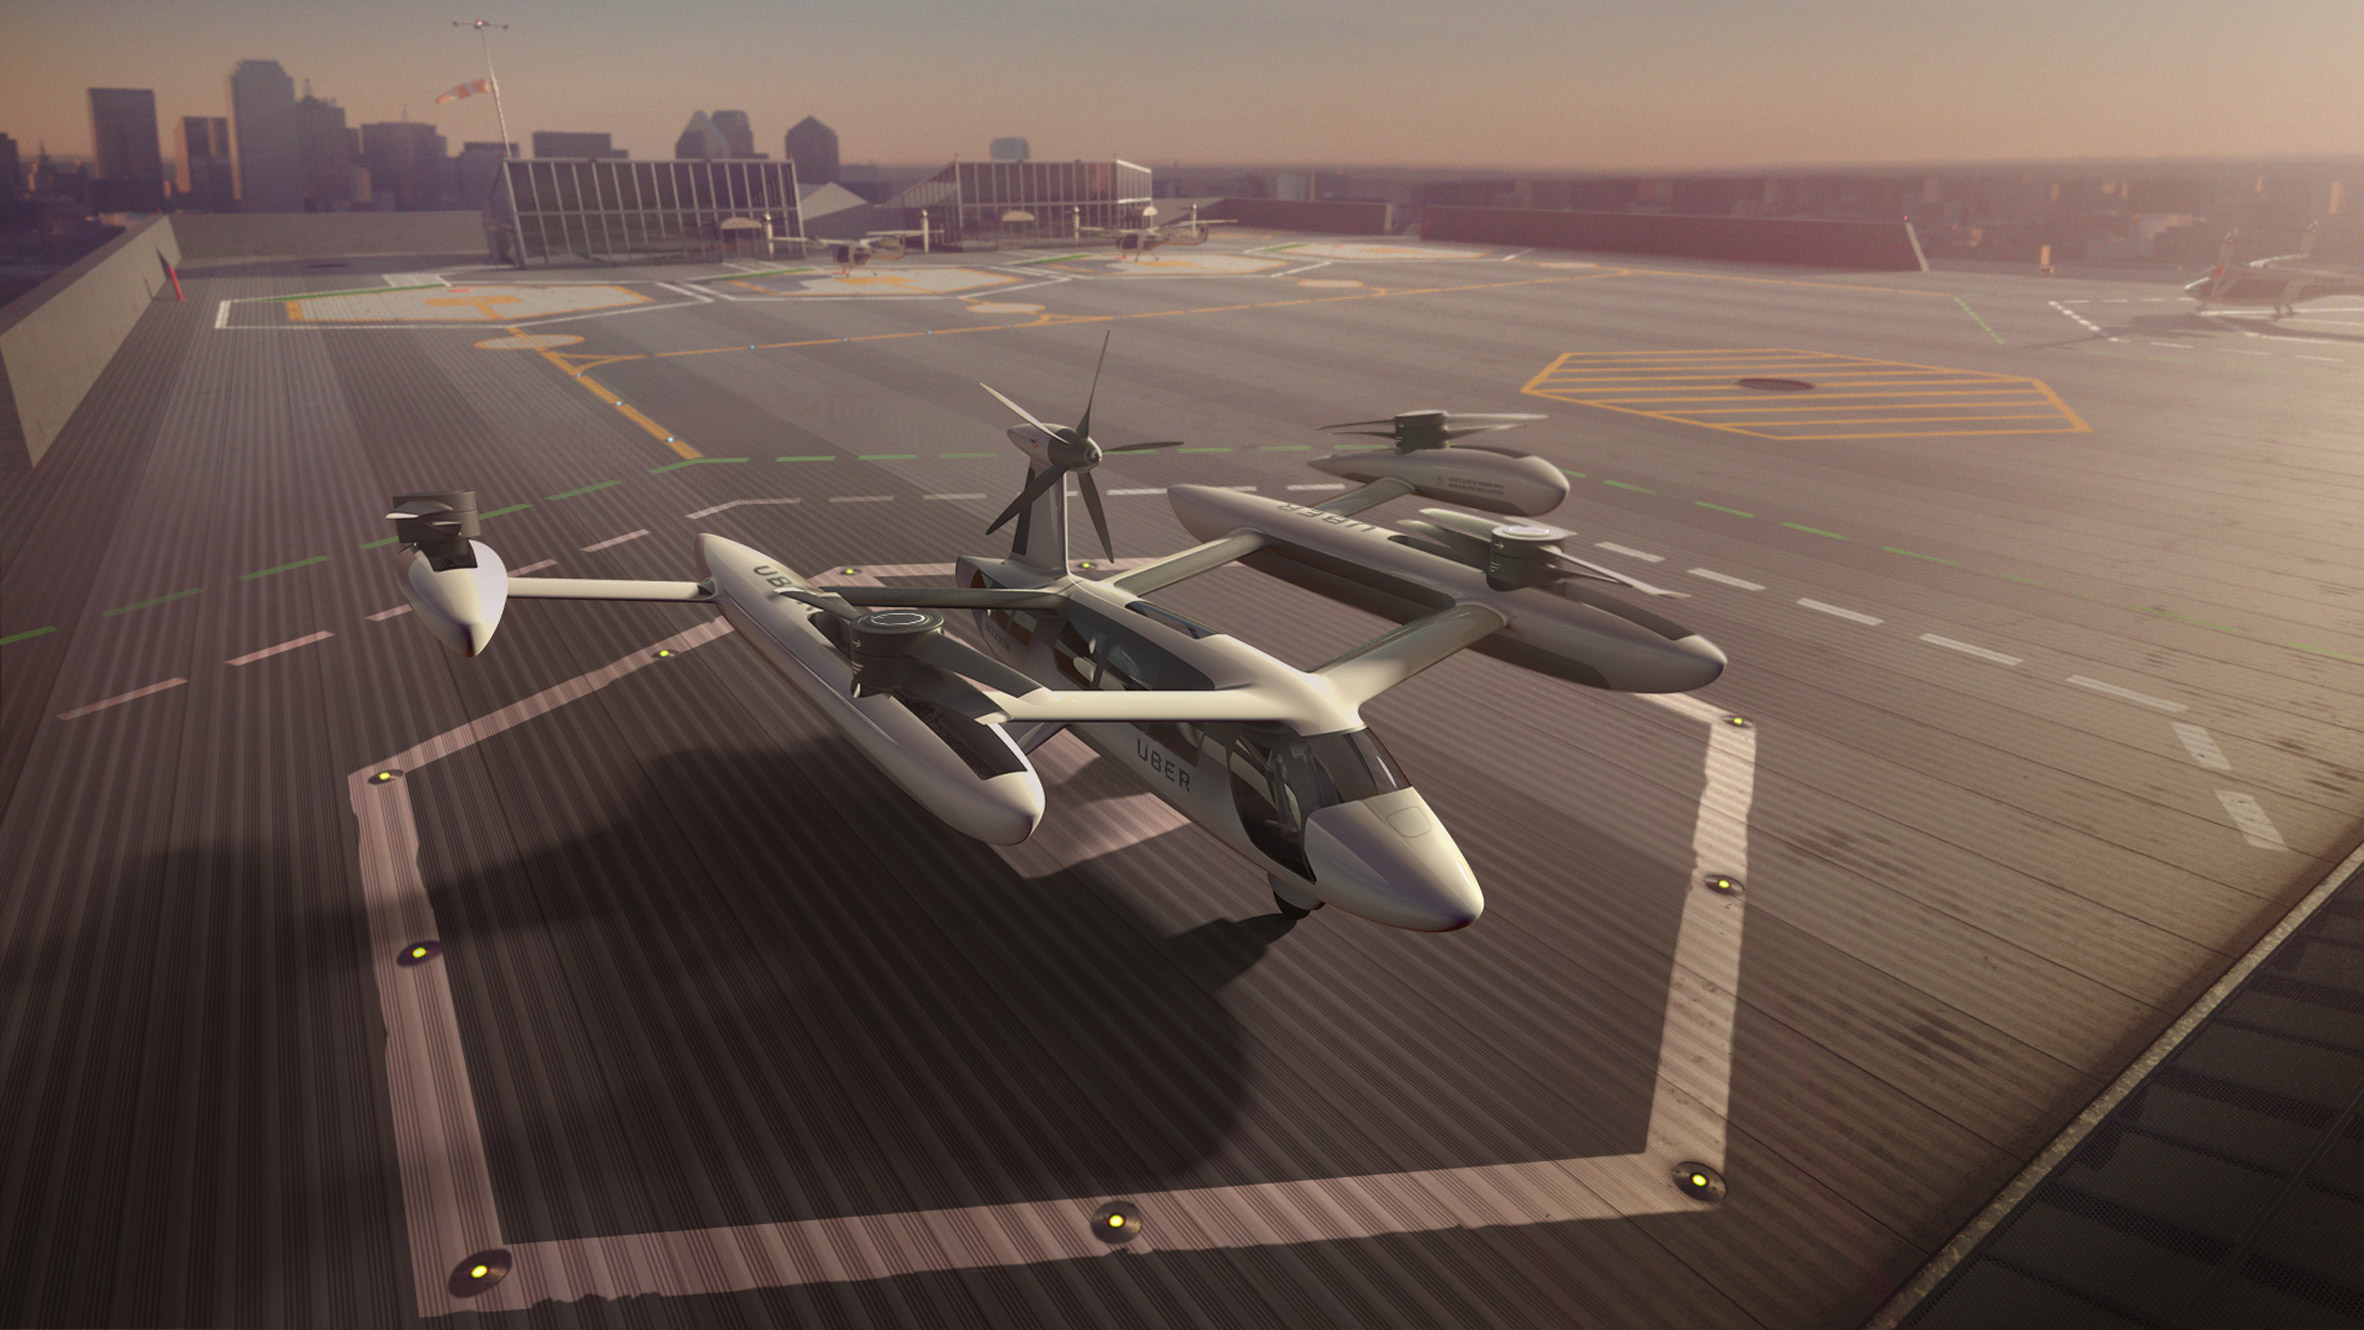 An illustrative model of Uber's electric vertical takeoff and landing vehicle (eVTOL).